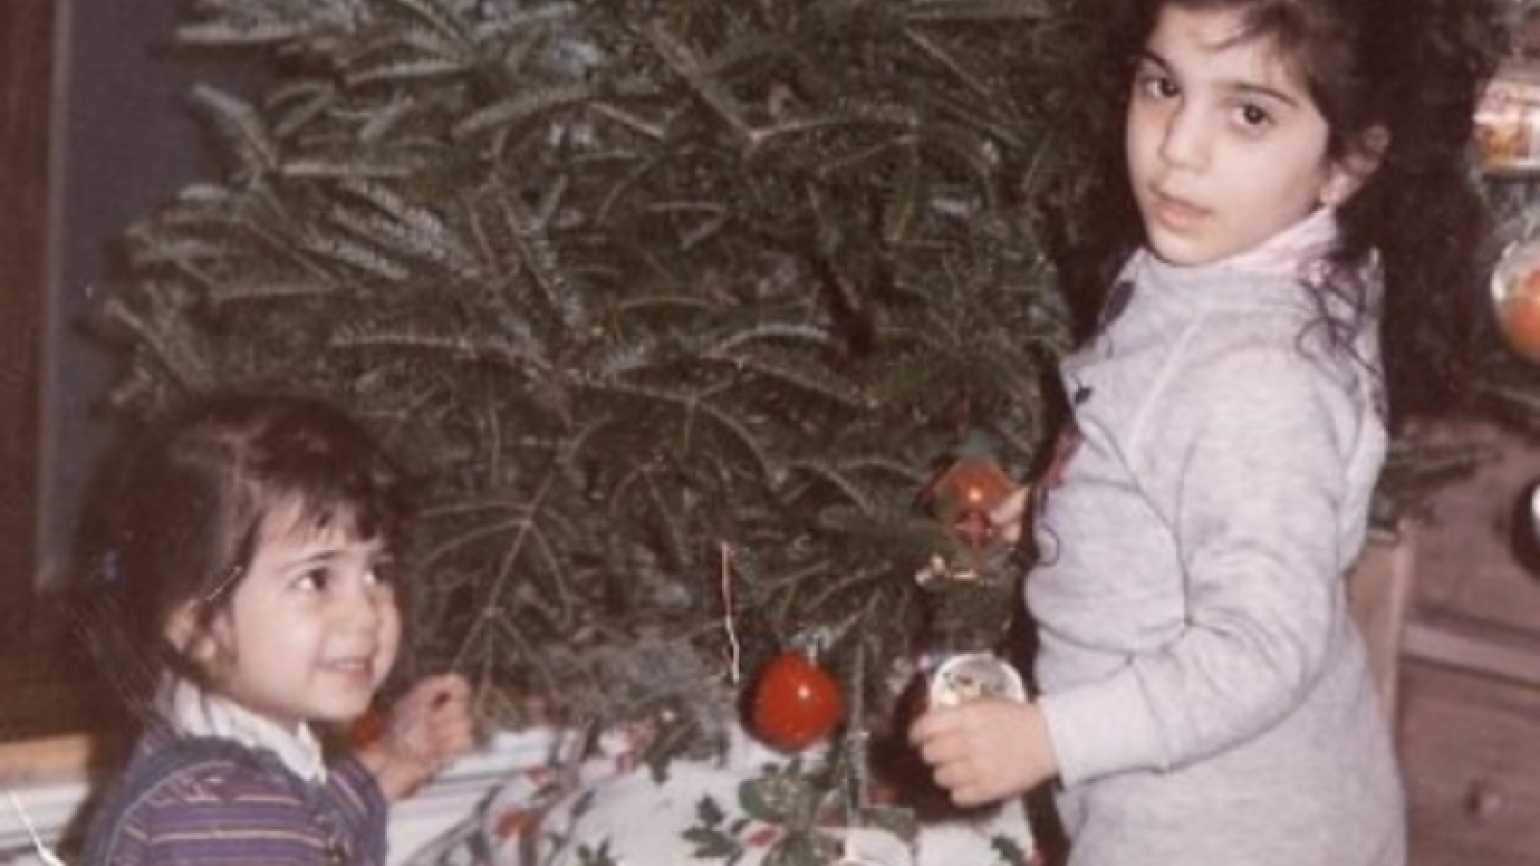 Mysterious Ways associate editor Diana Aydin trimming the tree at age 3.